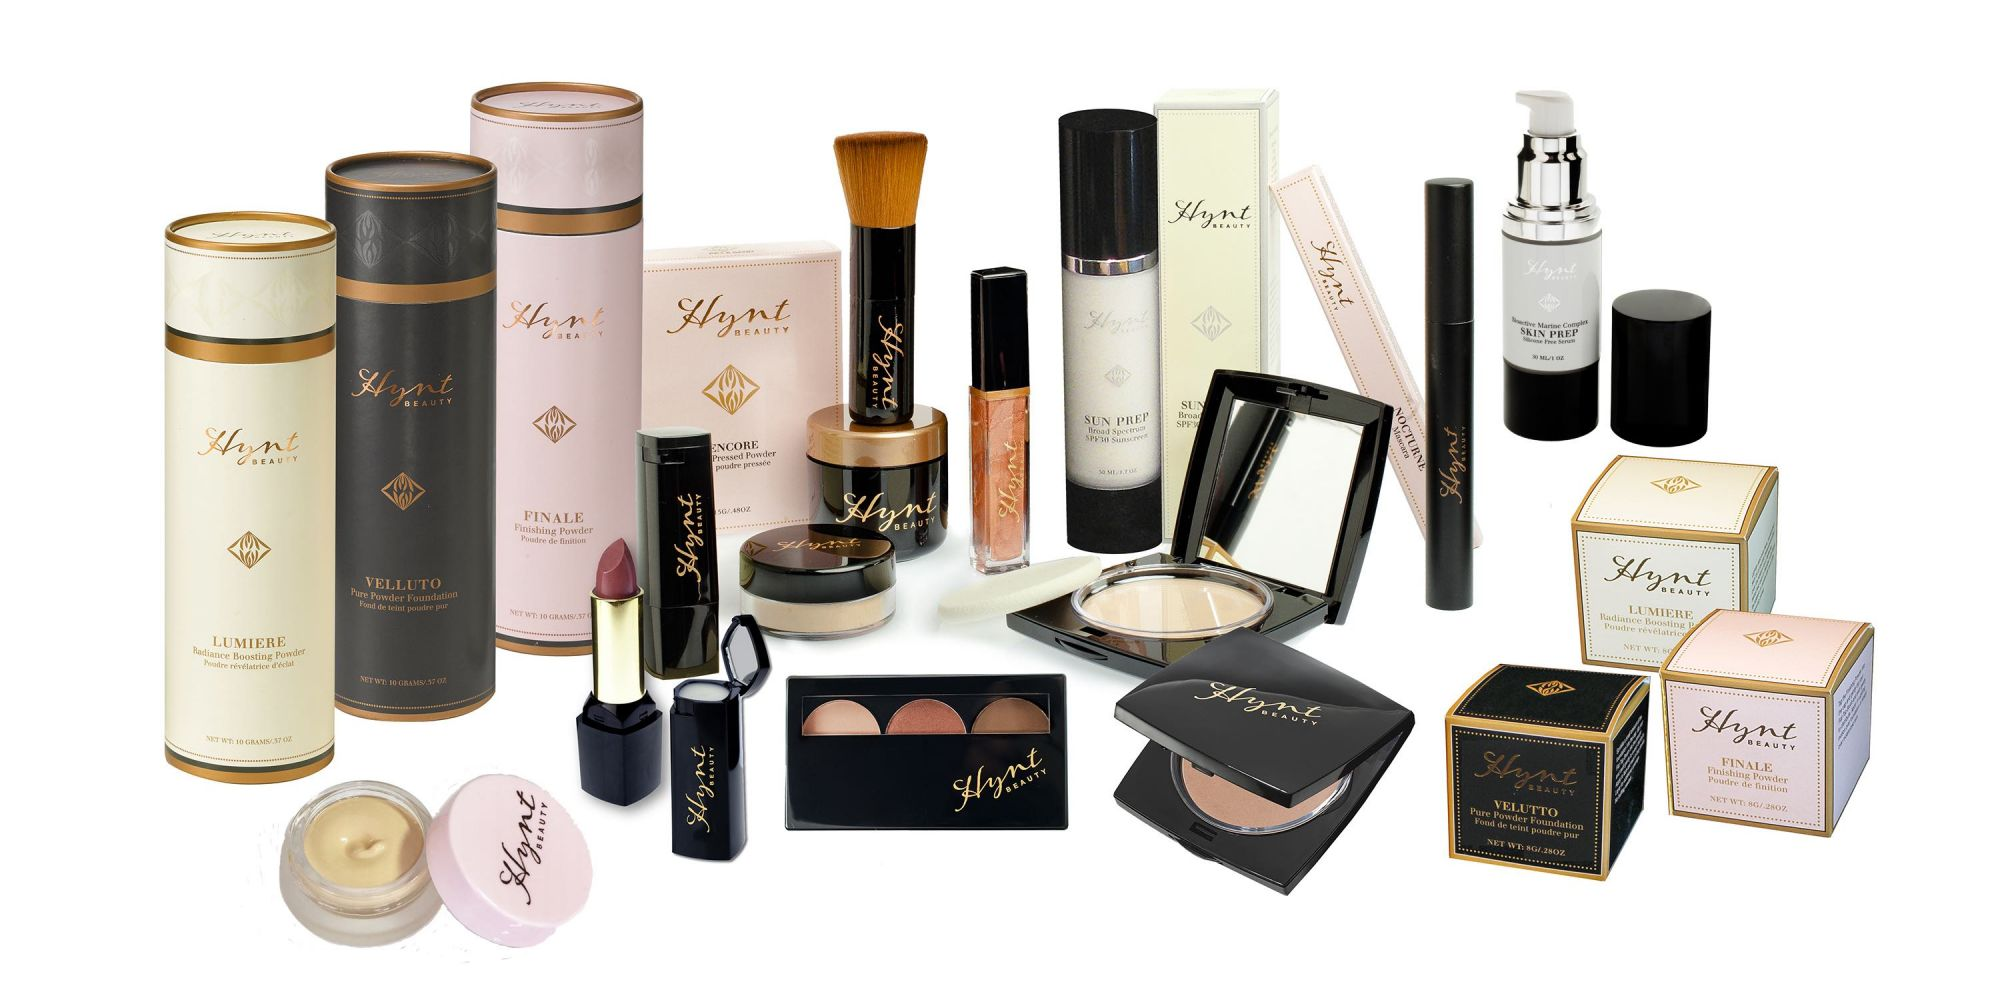 Hynt Beauty Breaks Into The Detox Market's Makeup Assortment